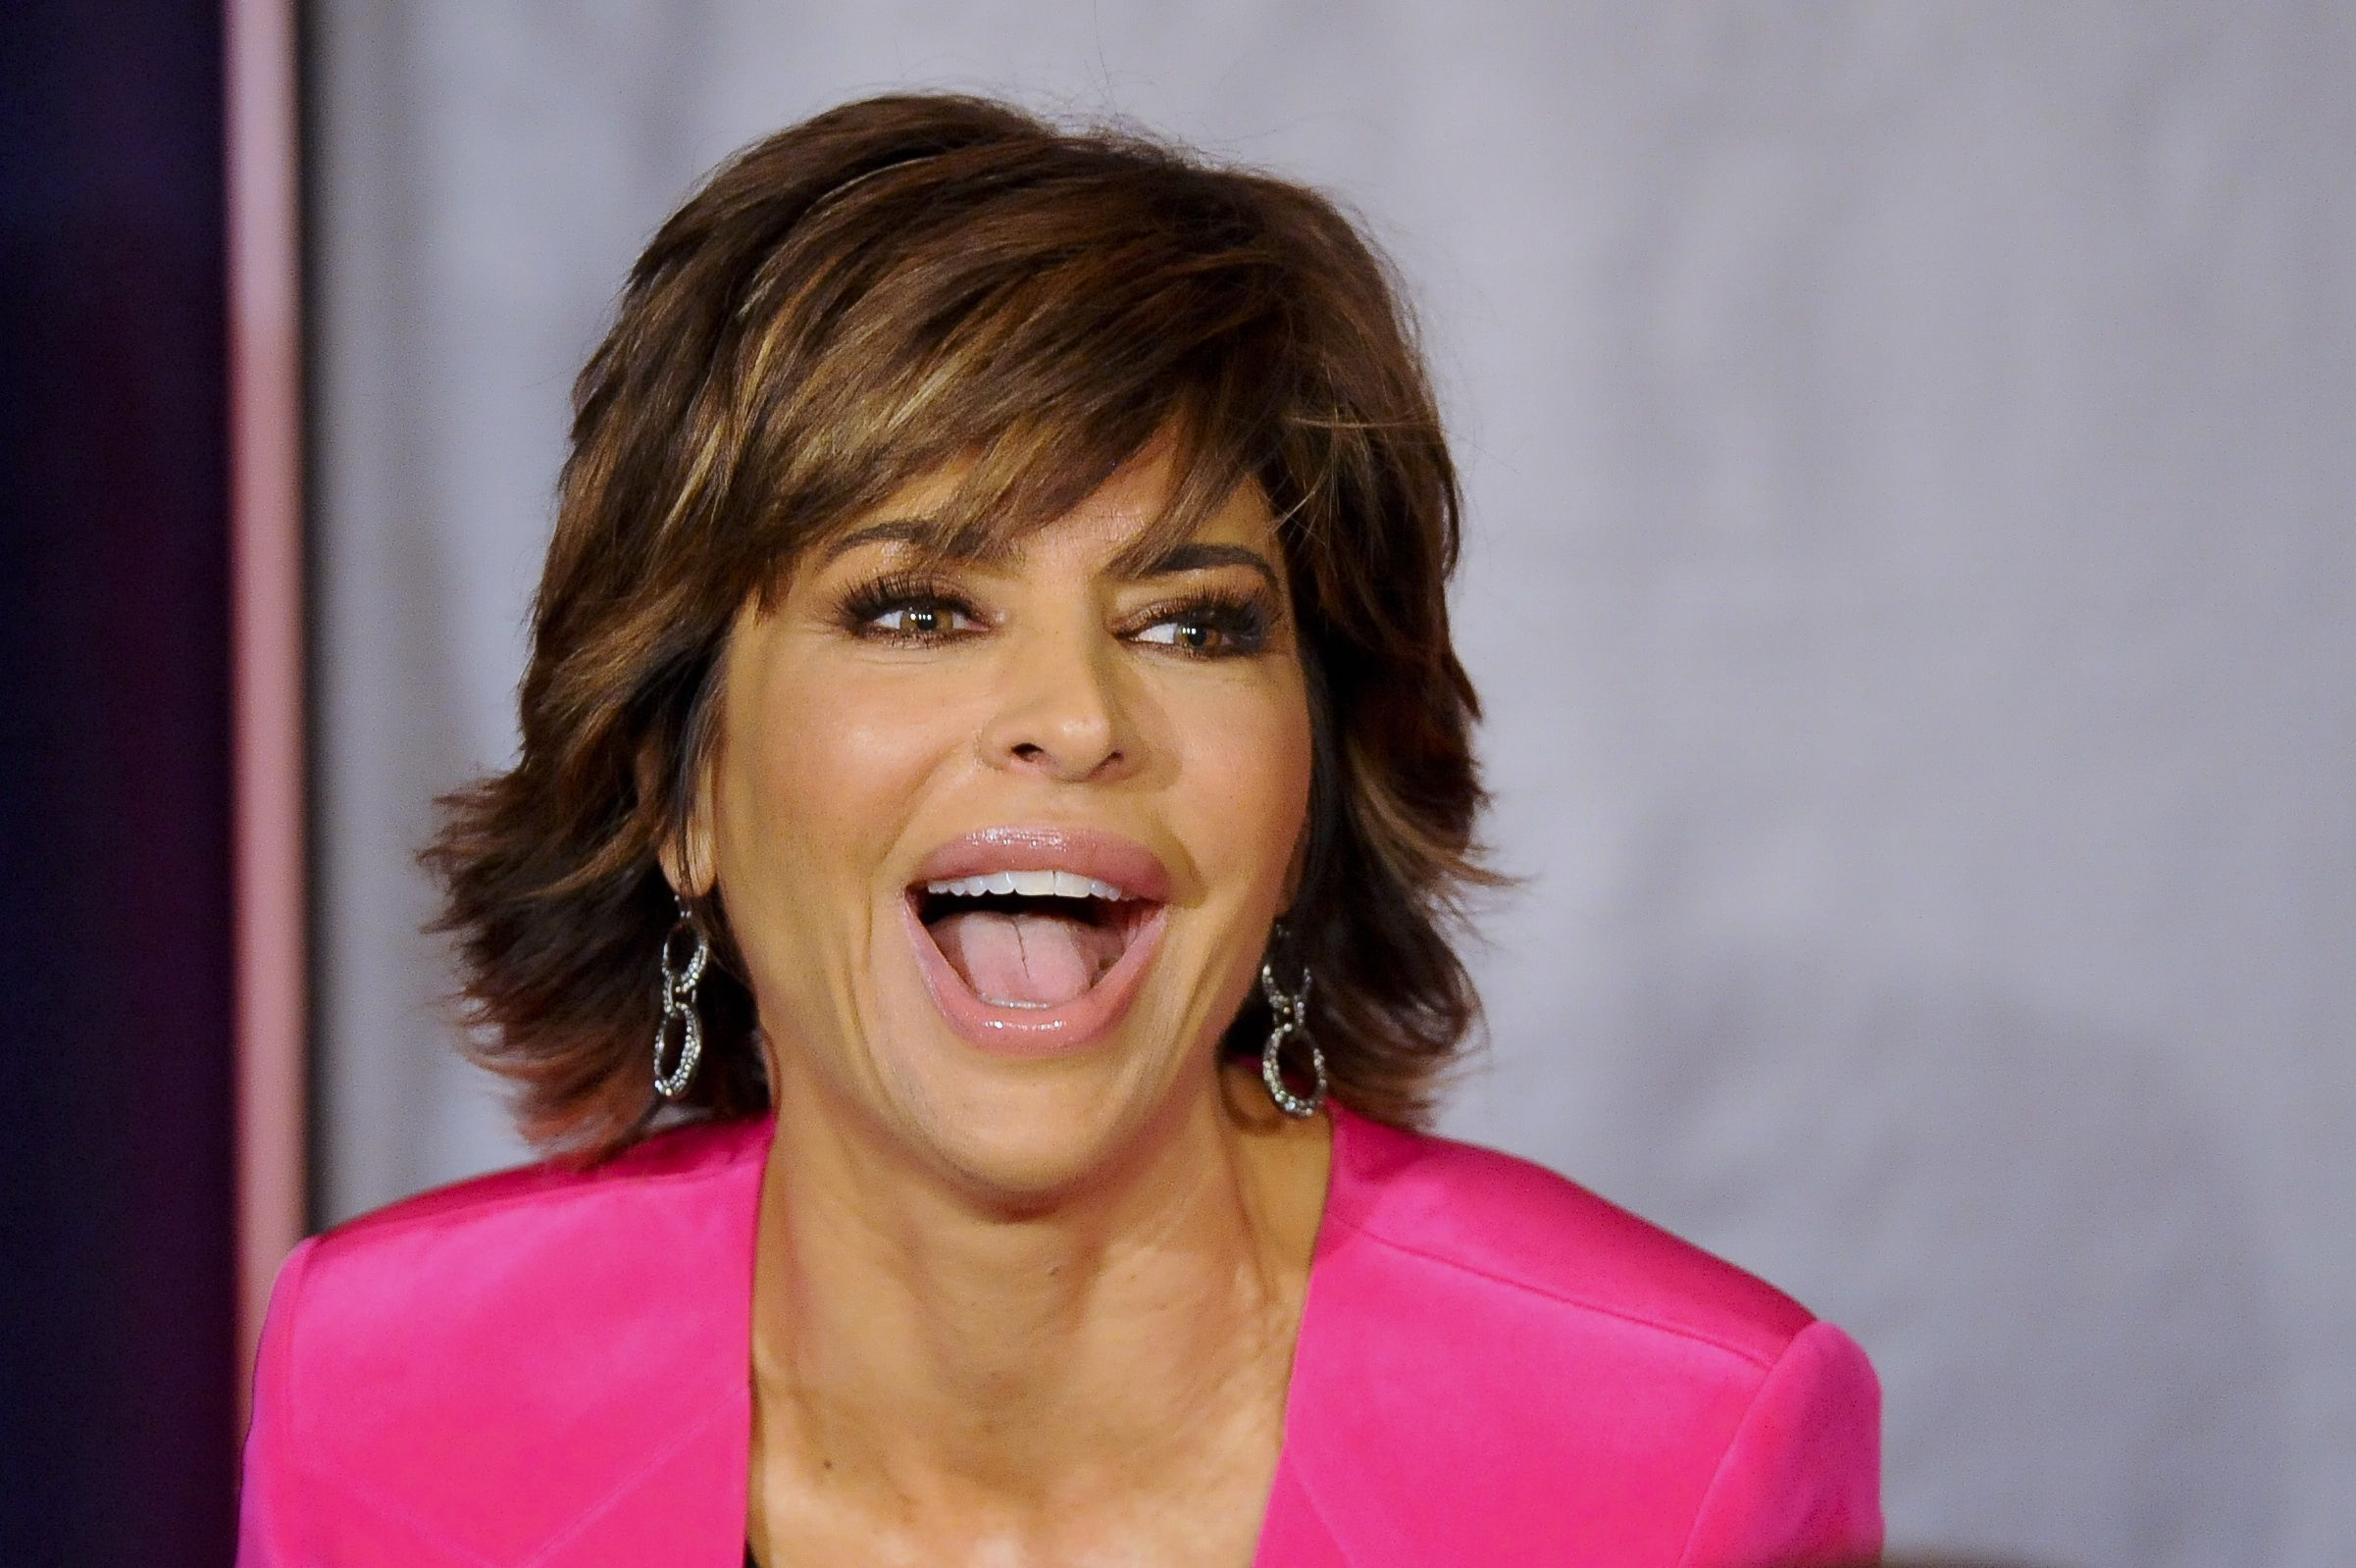 Lisa Rinna Joining Real Housewives Of Beverly Hills